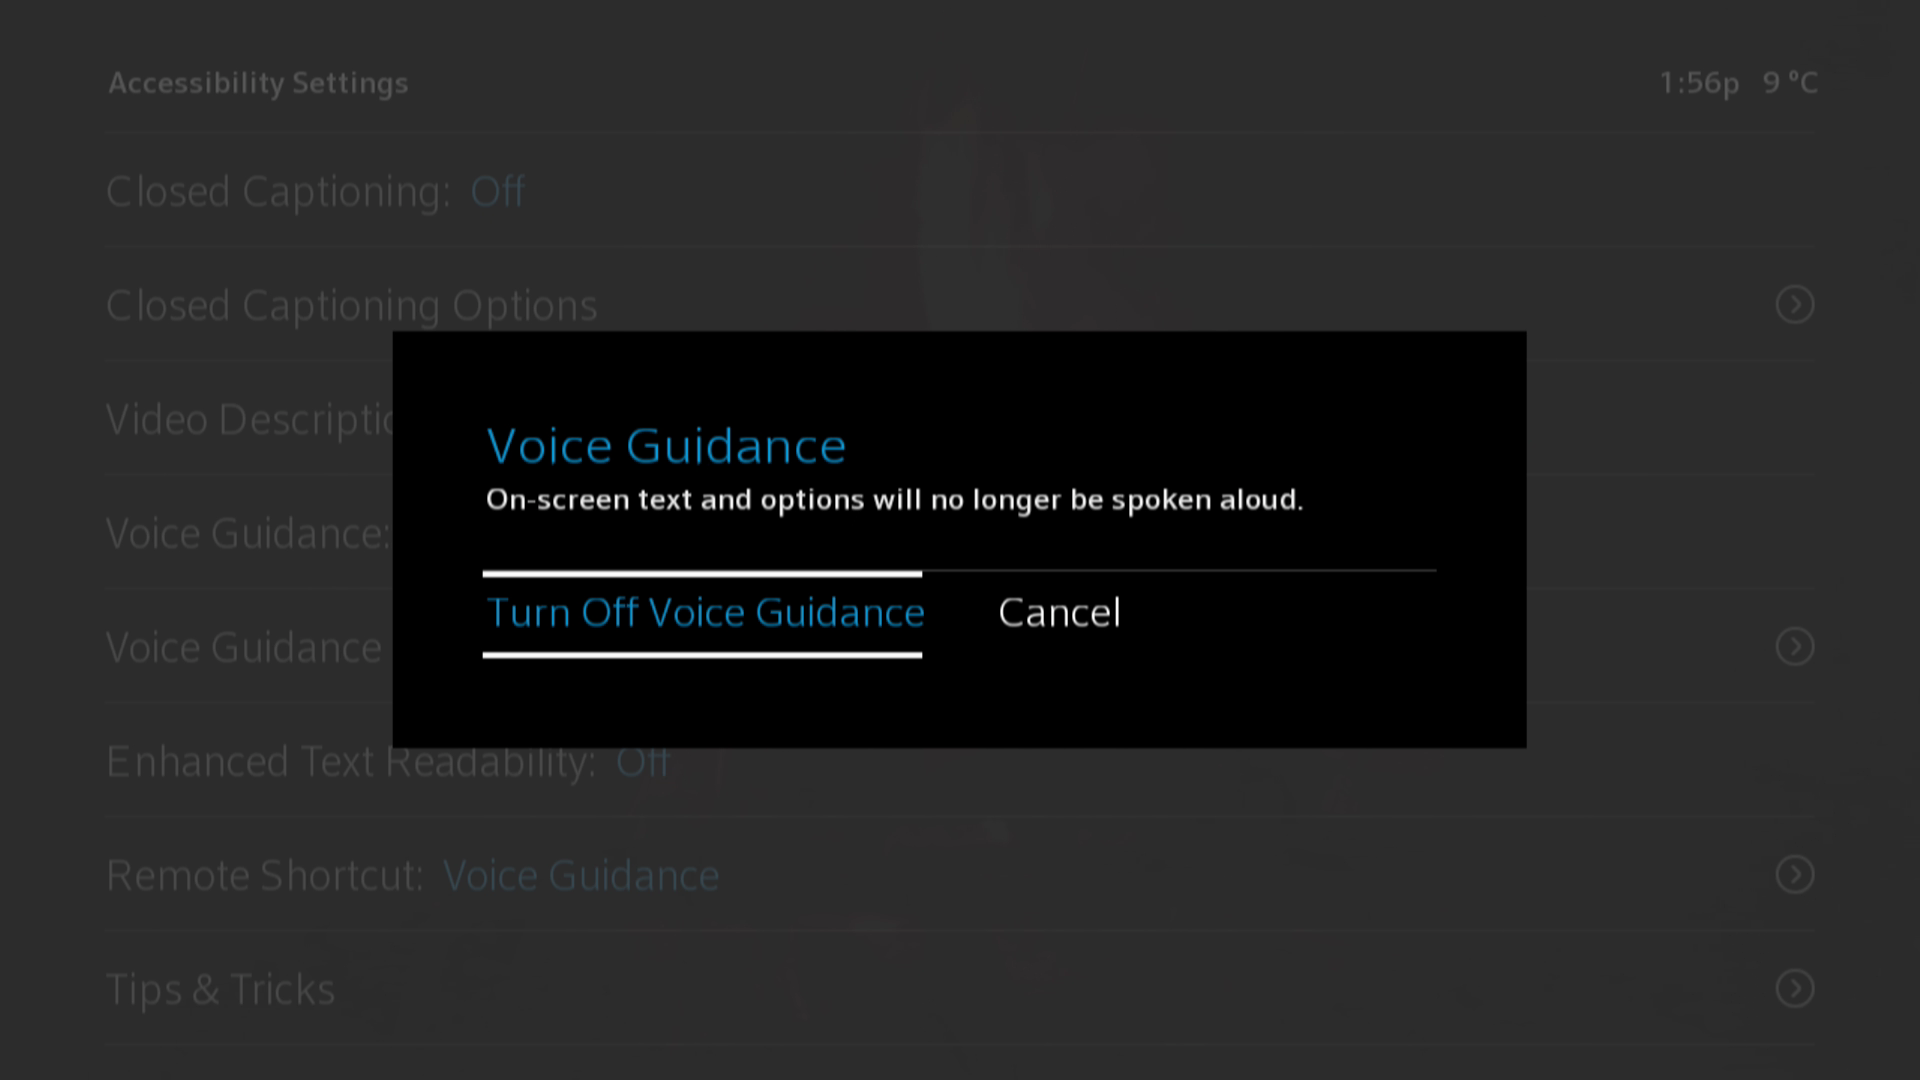 Disable Voice Guidance